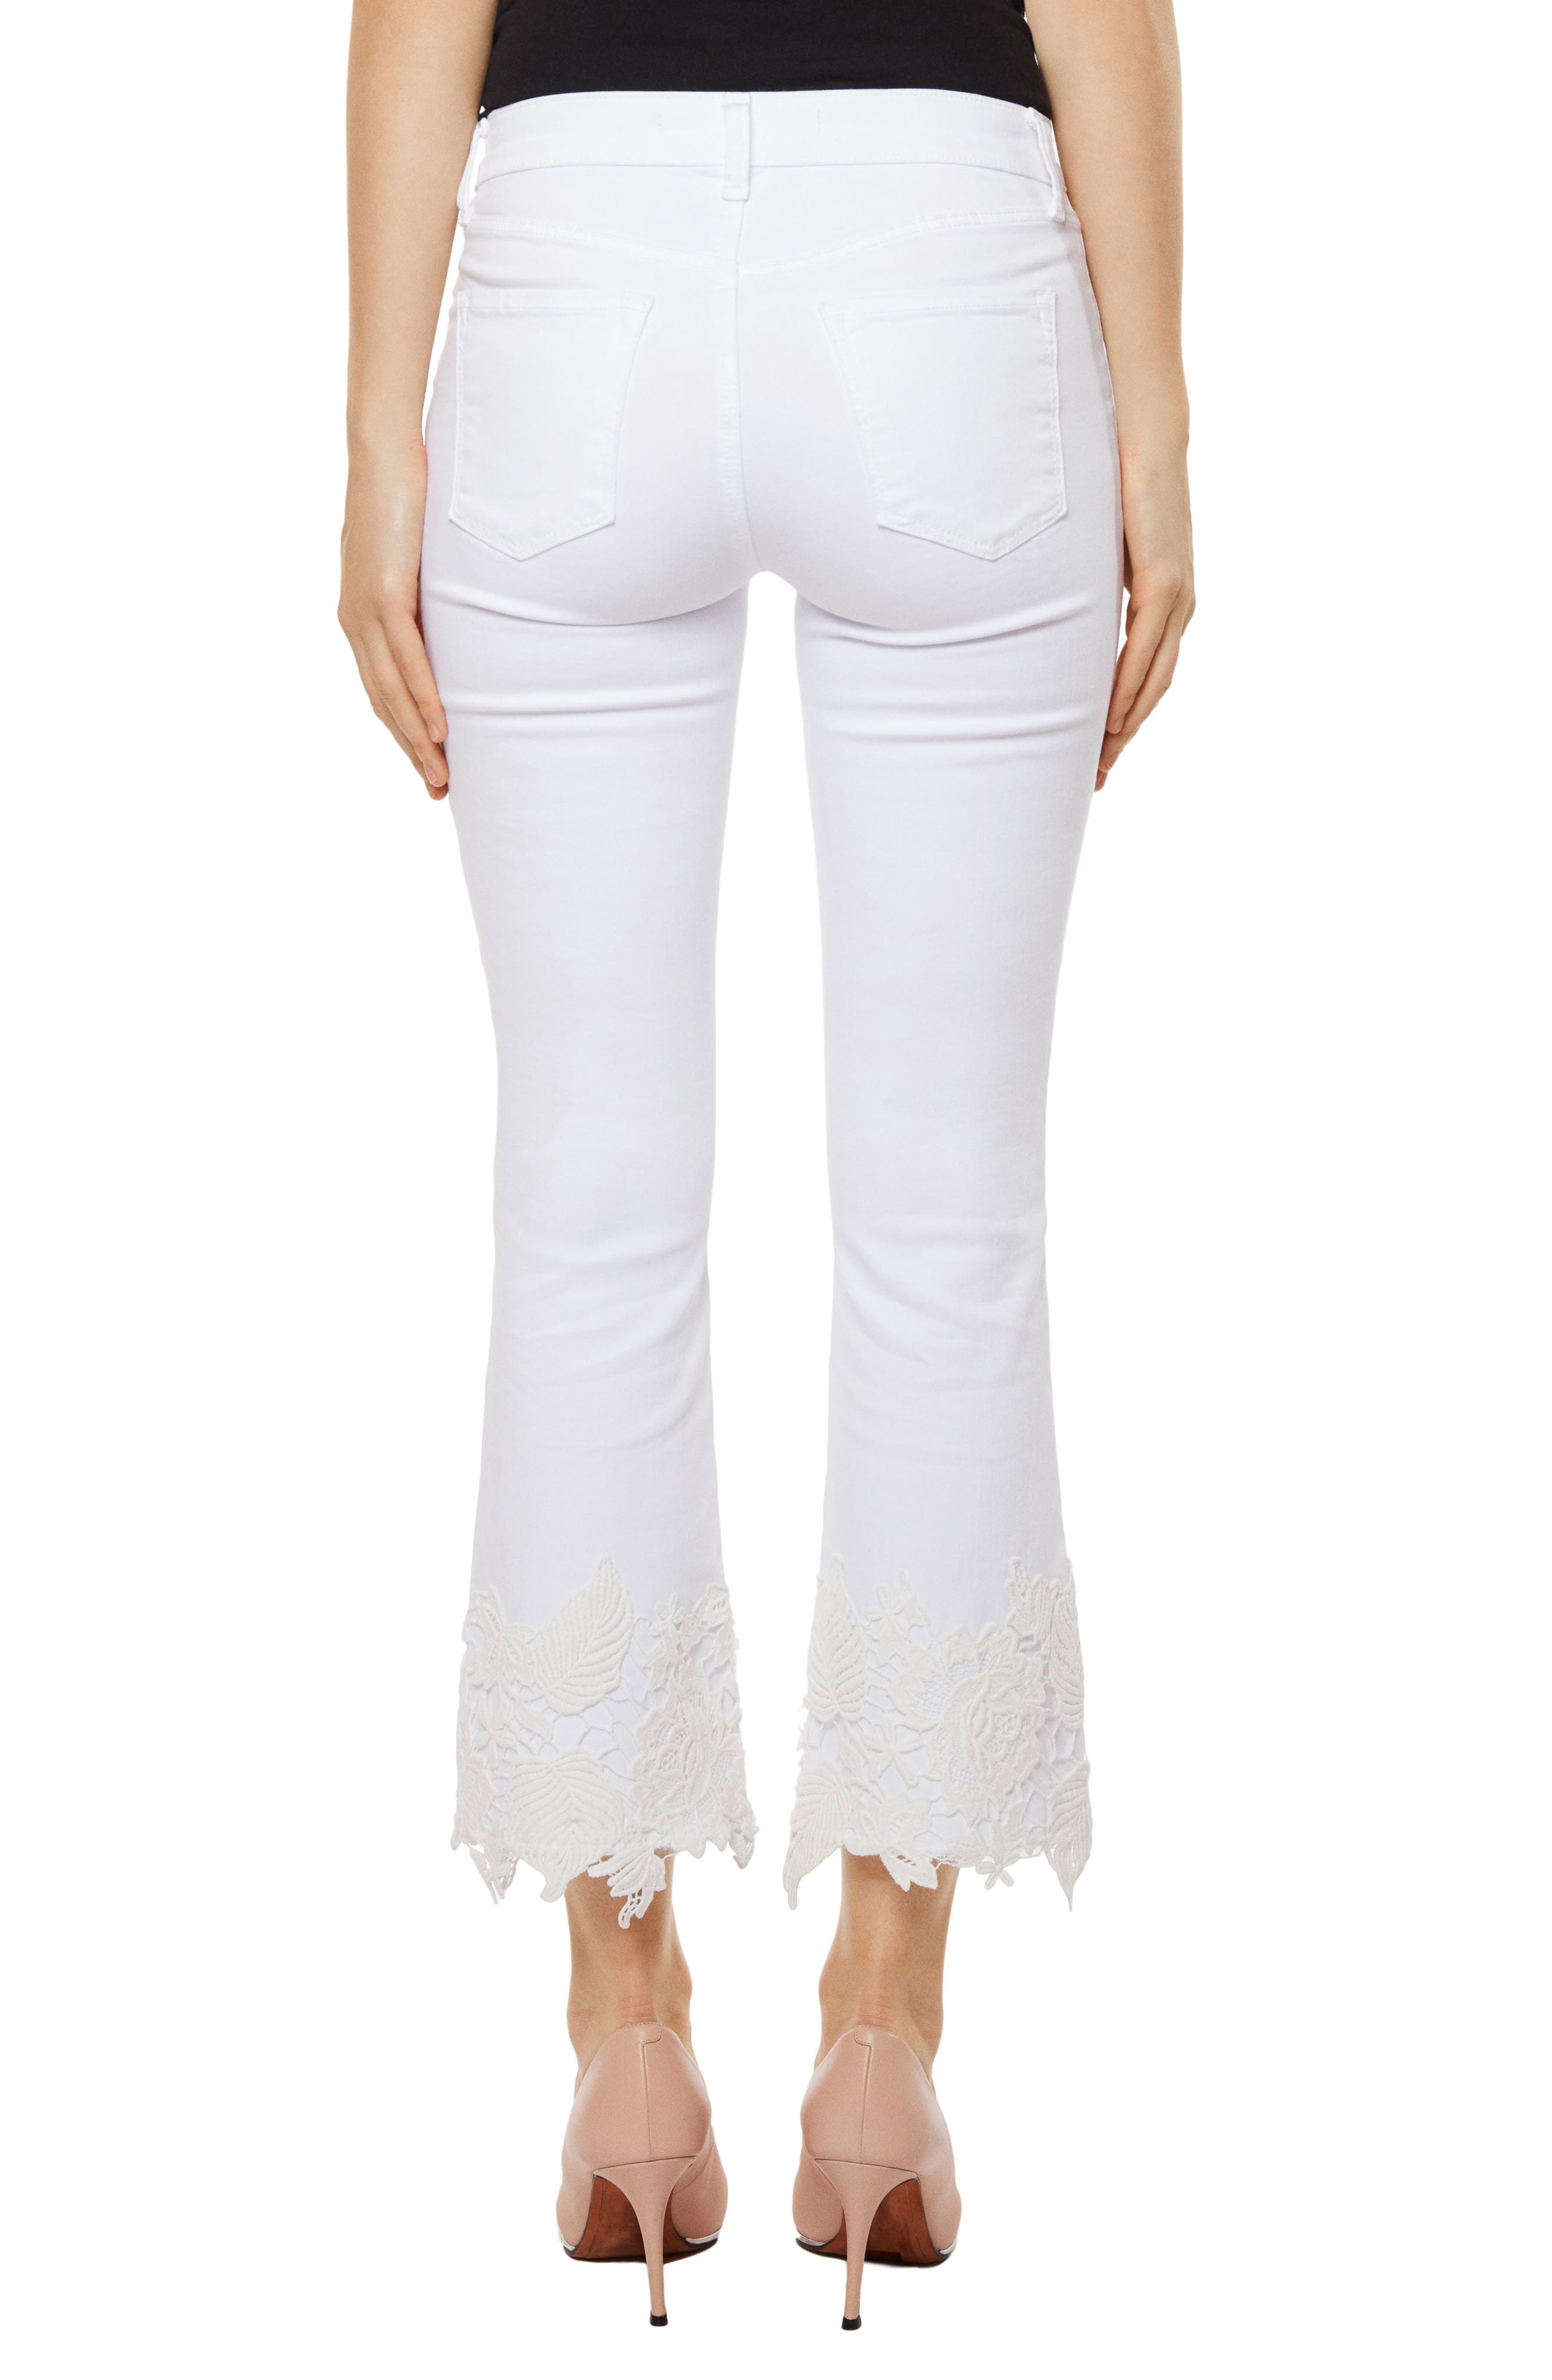 Alternate Image 2  - J Brand Selena Crop Bootcut Jeans (White Lace)